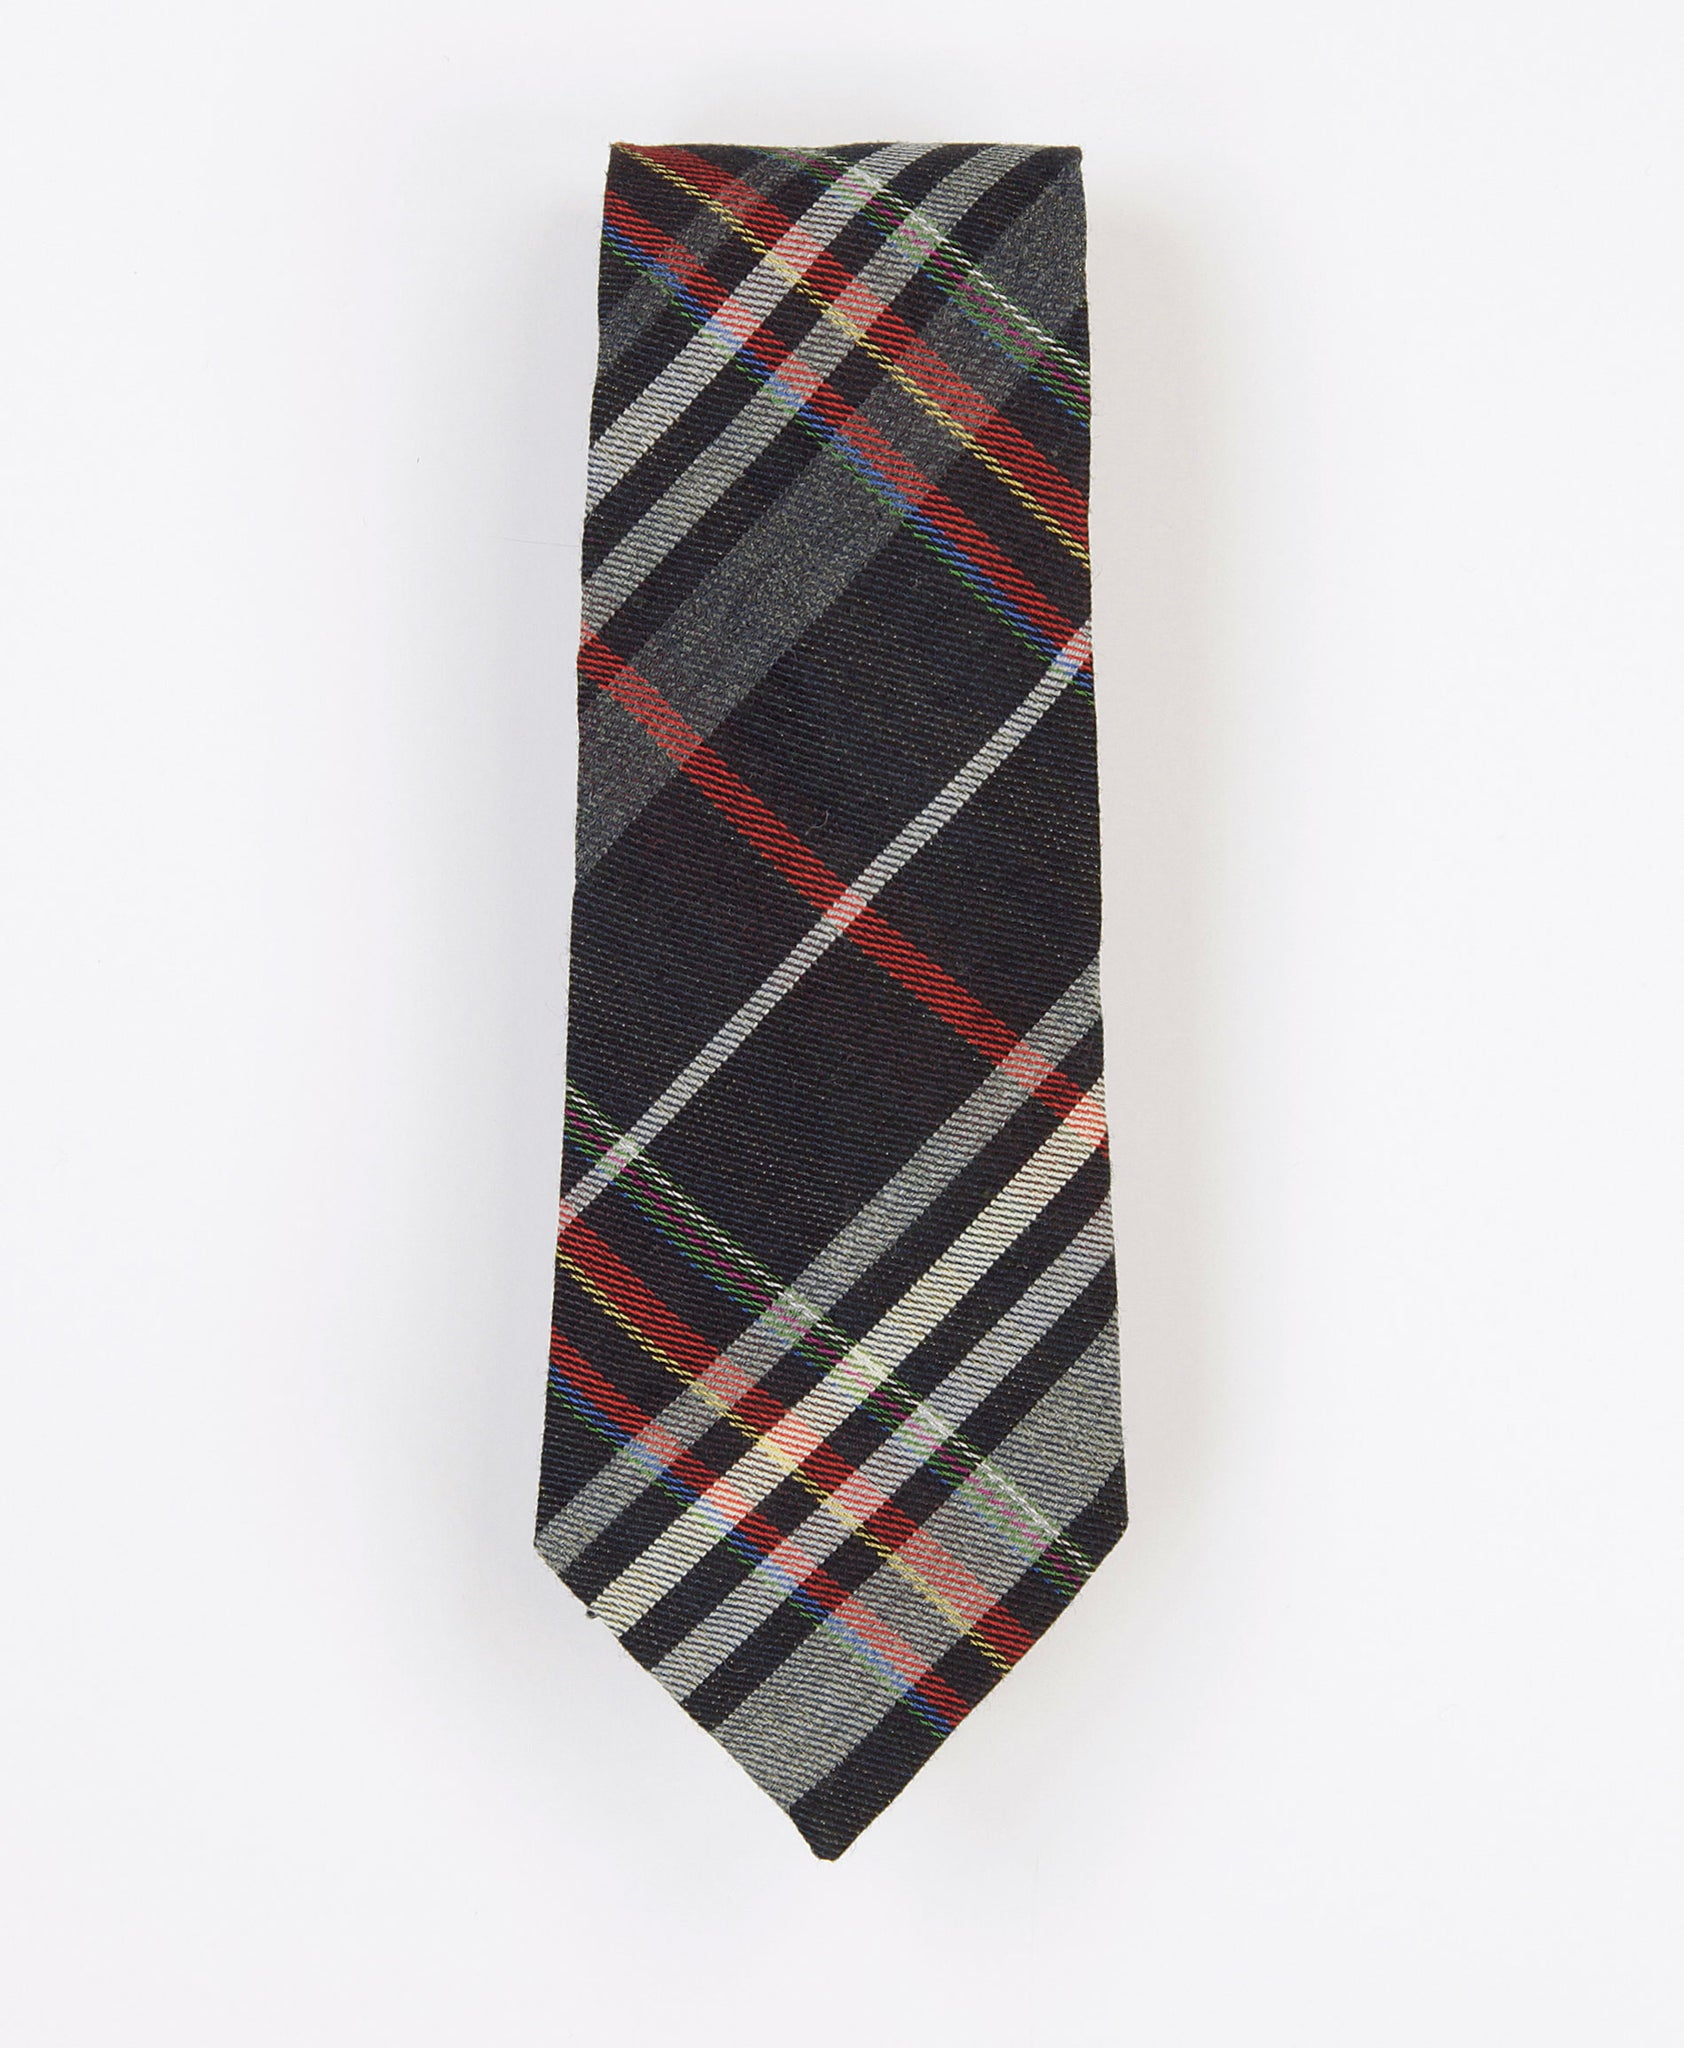 The Madison Necktie